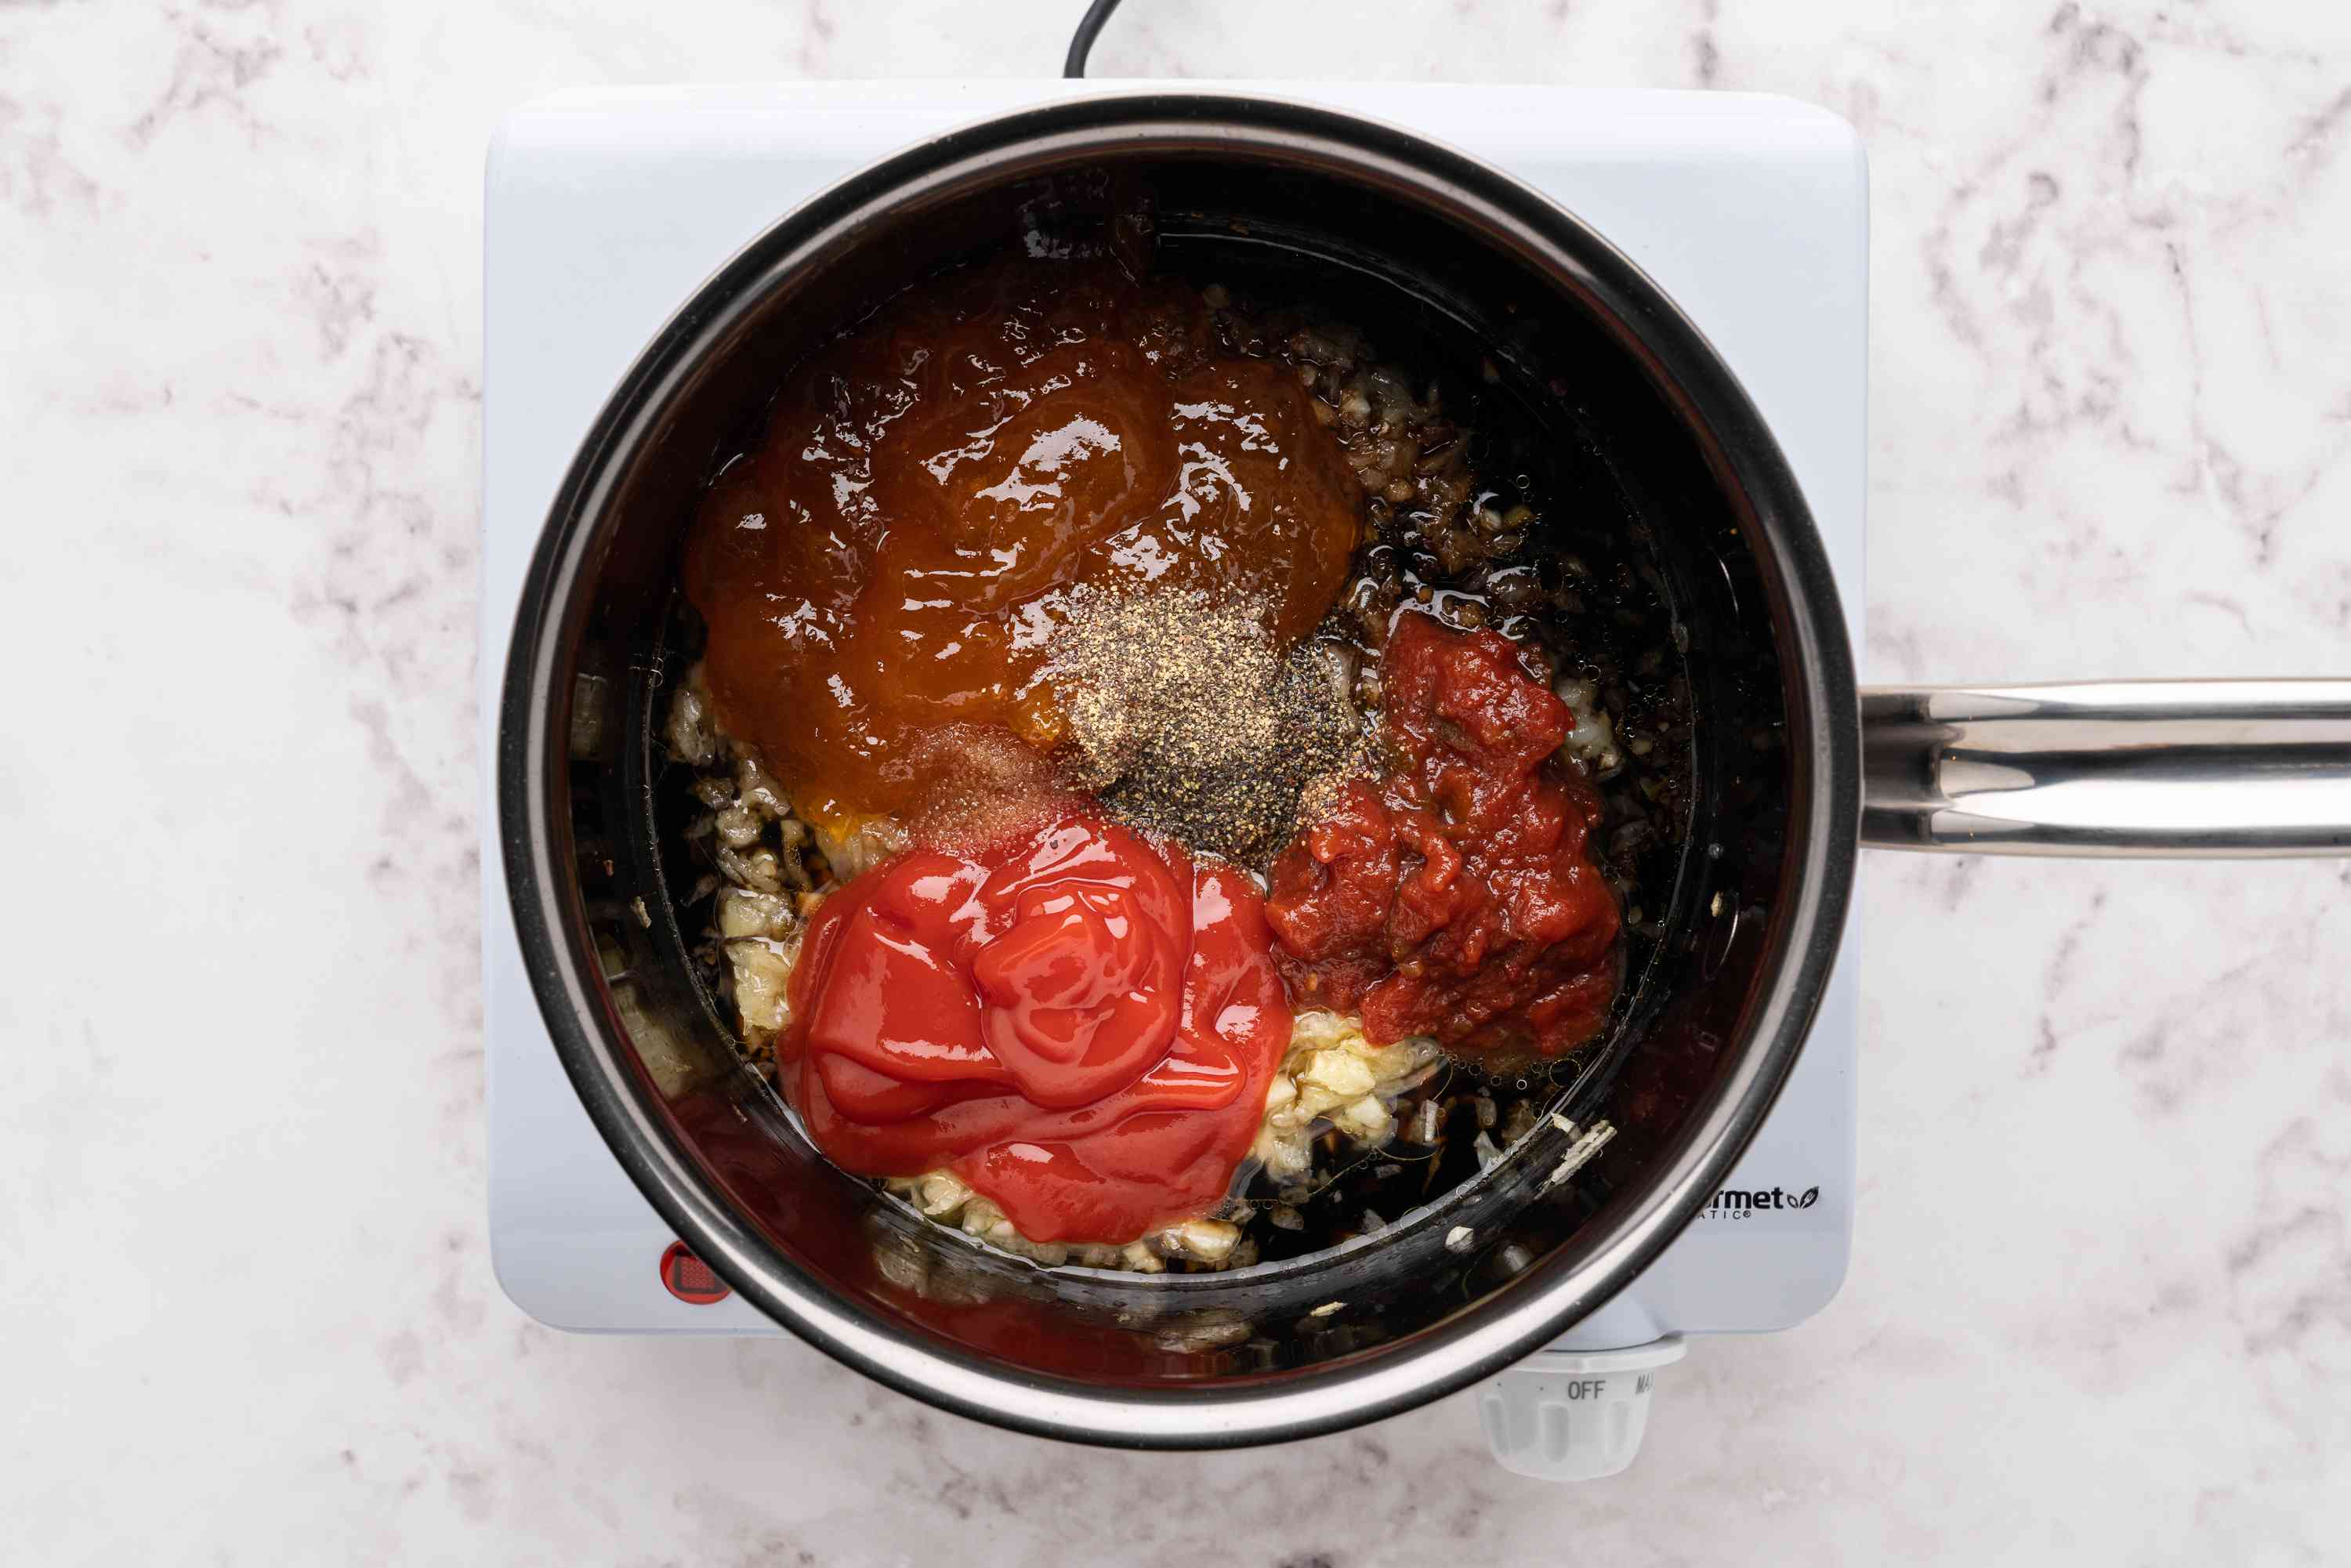 apricot chili glaze ingredients in a saucepan